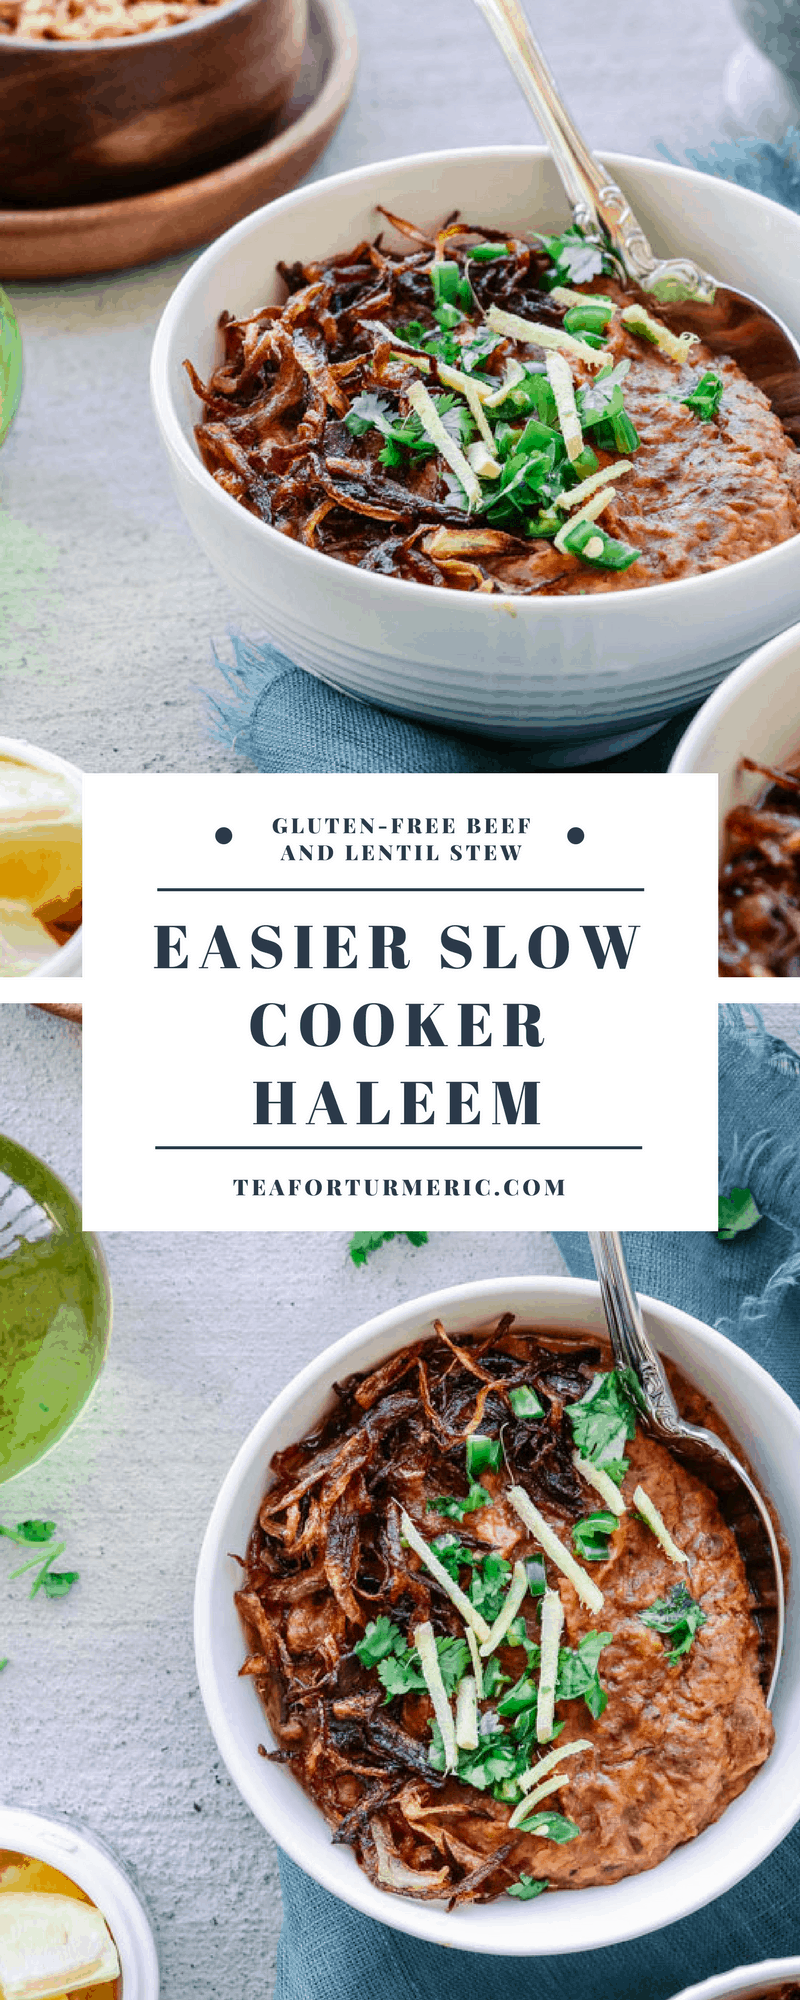 Haleem is a traditional Pakistani slow-cooked stew made of beef, lentils, and oats. This slow-cooker recipe makes it easy to enjoy this wholesome comfort food that\'s loved all over the world. This recipe is easy-to-follow and gives the most authentic results. Naturally gluten-free!